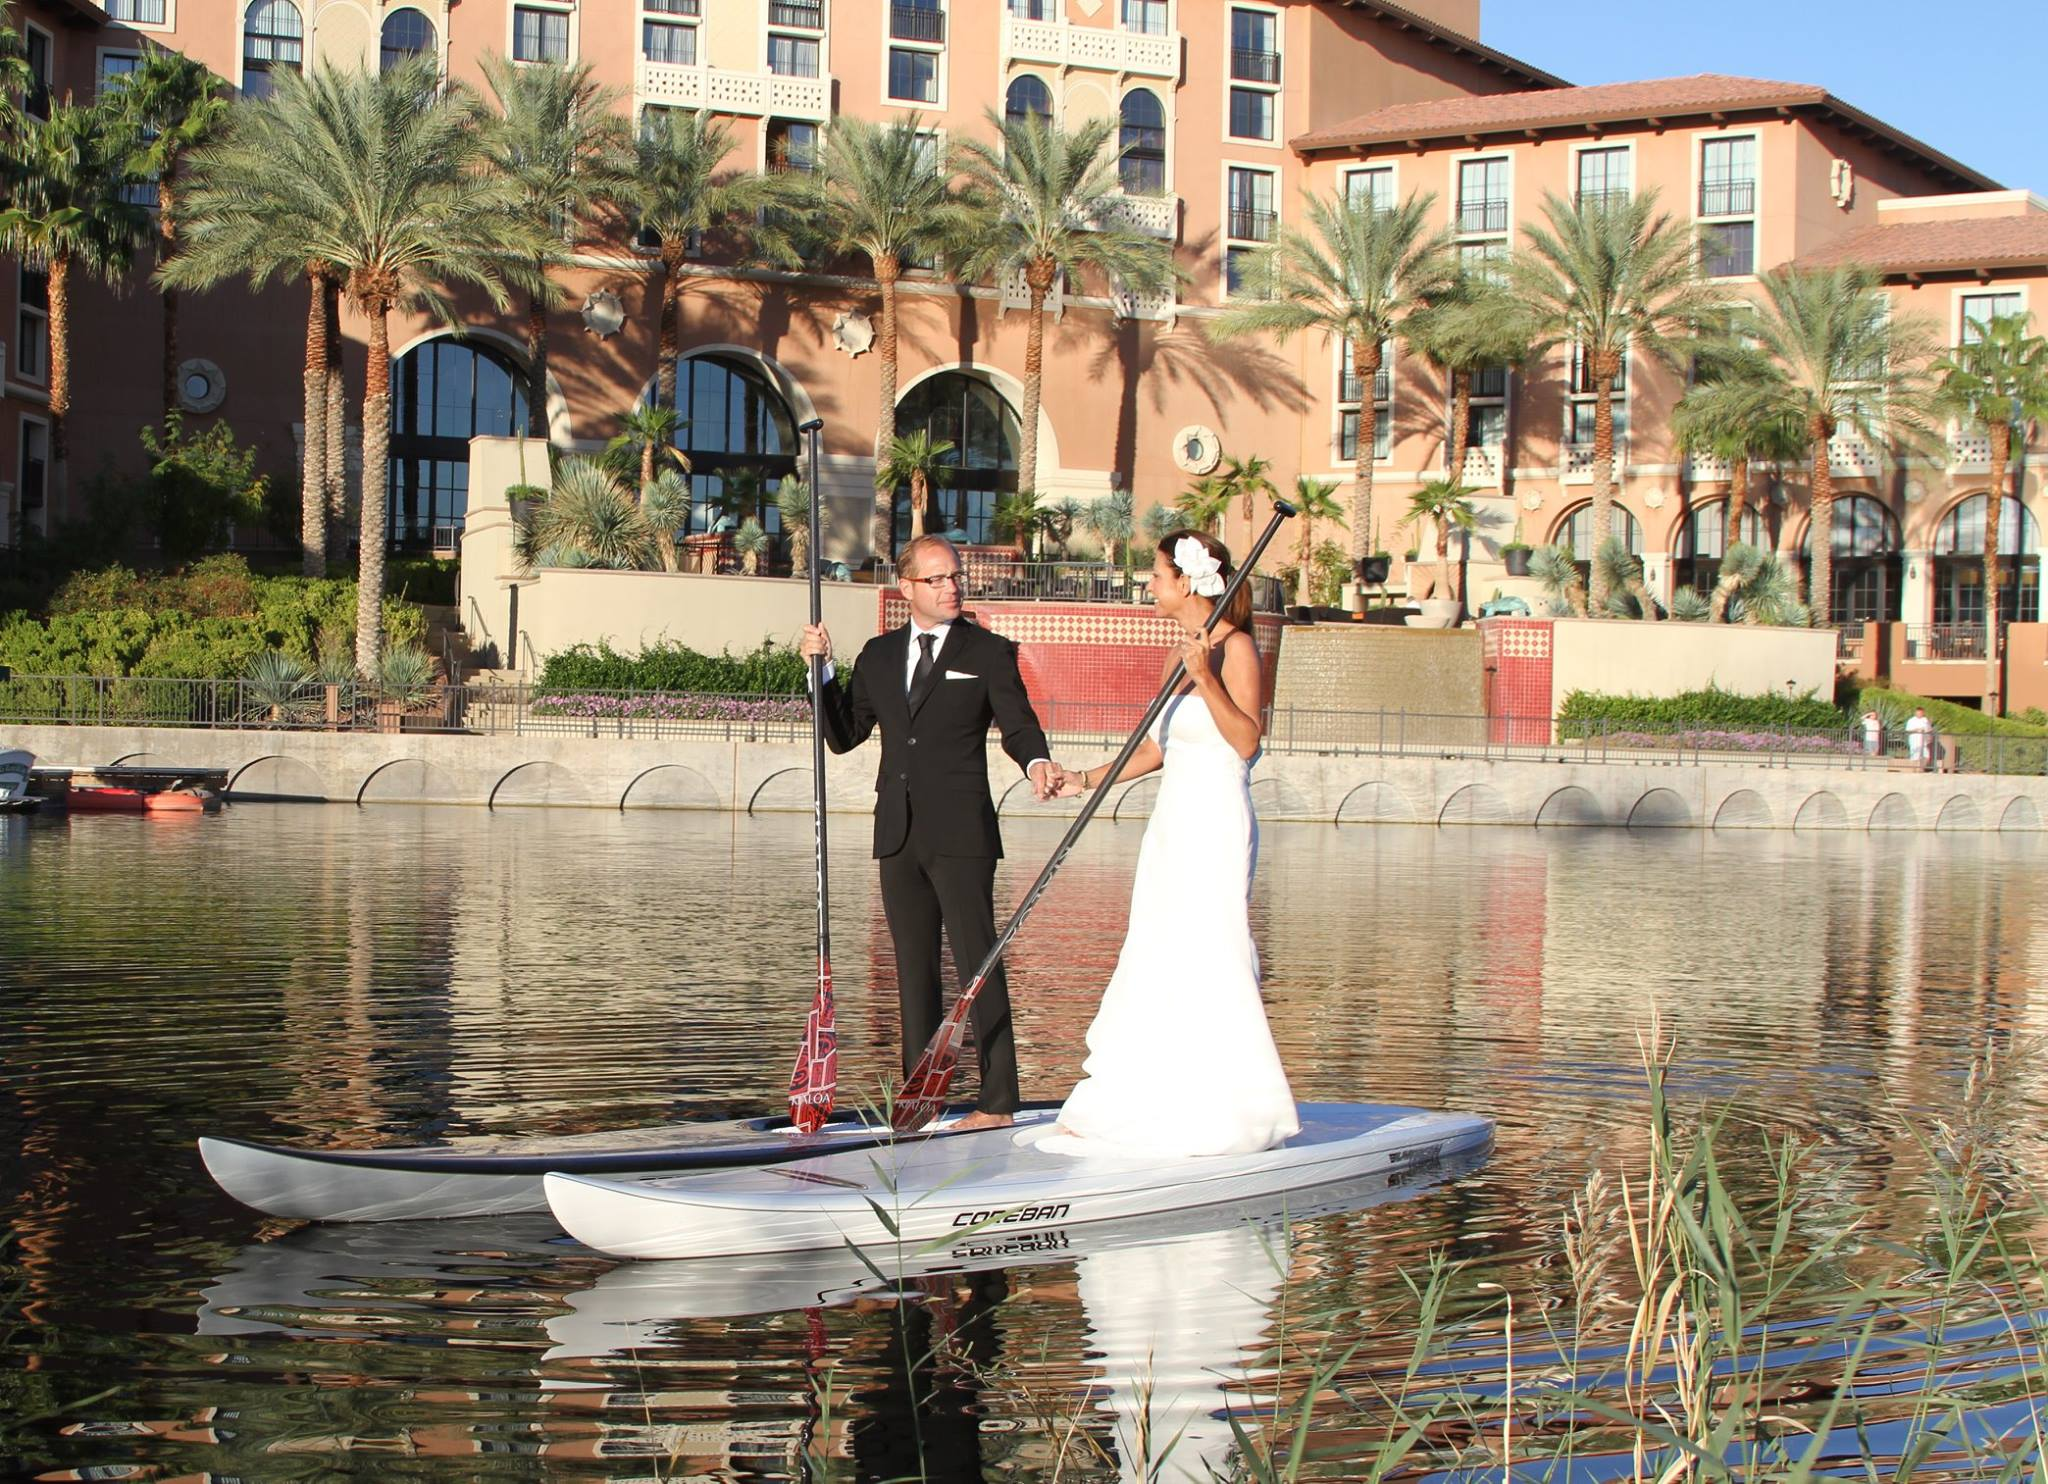 Landscape At Westin Lake Las Vegas Bride And Groom On Paddle Boats